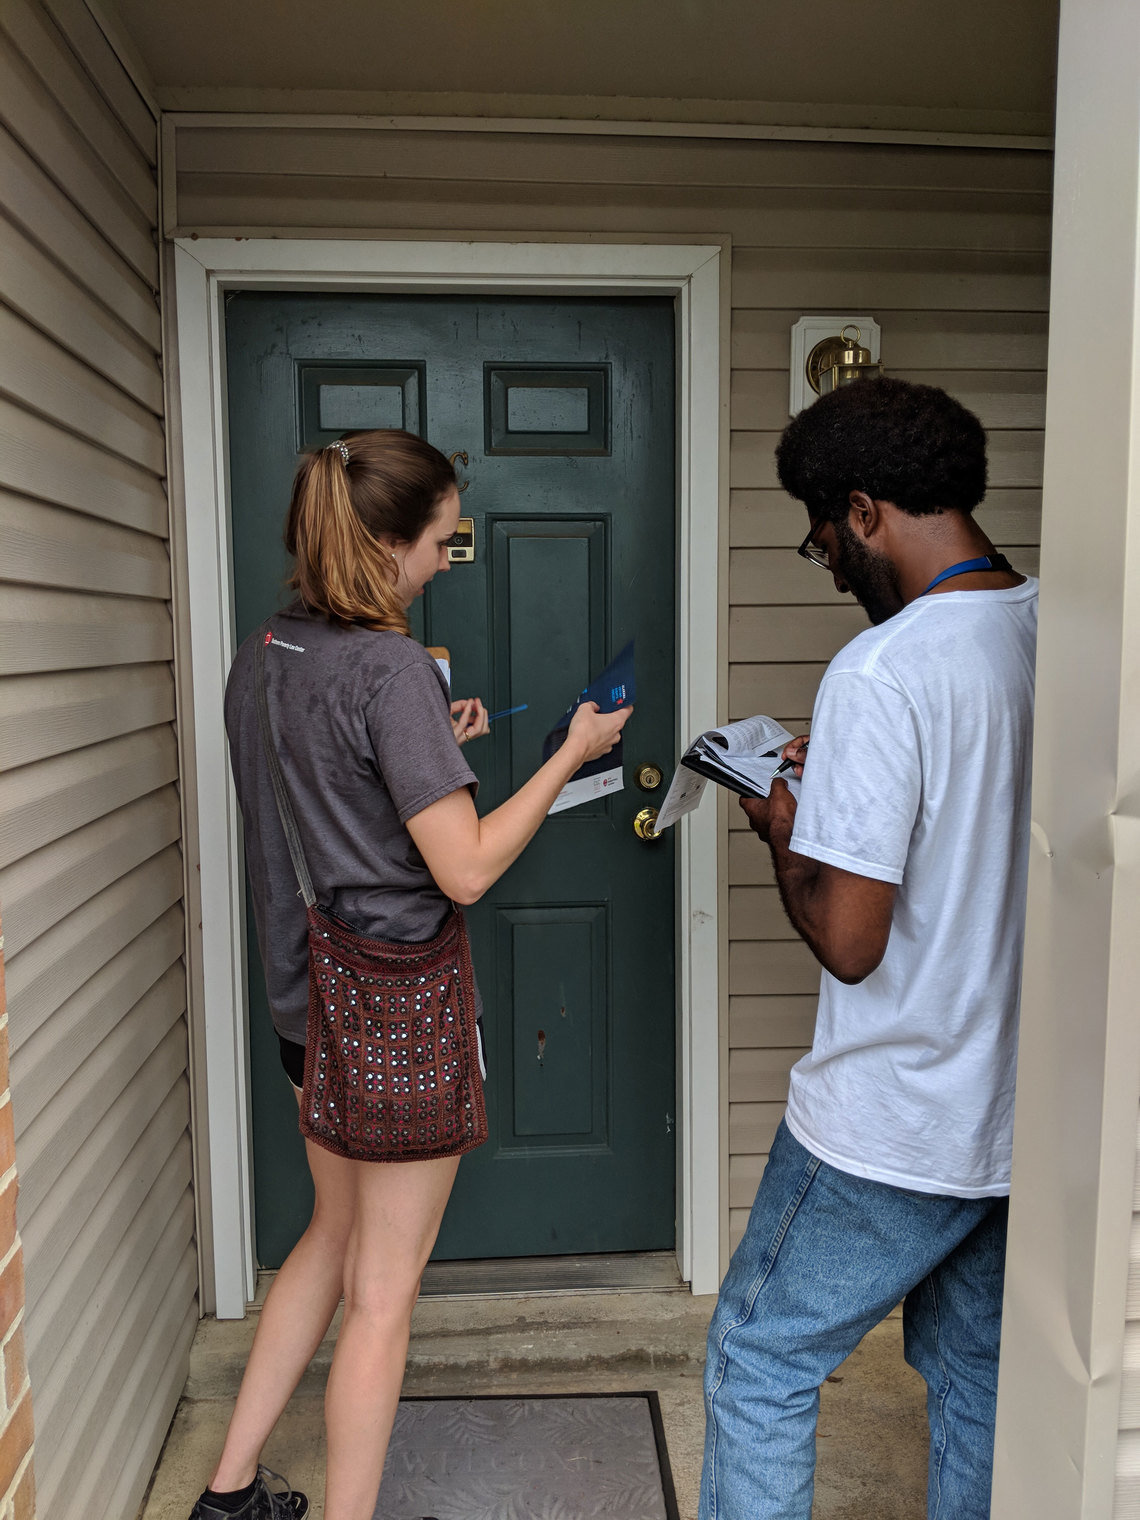 Sean Champagne and Ellen Boettcher, Alabama Voting Rights Project fellows, canvassing in Montgomery in August 2018.  They told residents about the change in the Alabama law that allows many people with convictions who previously could not vote to get registered.